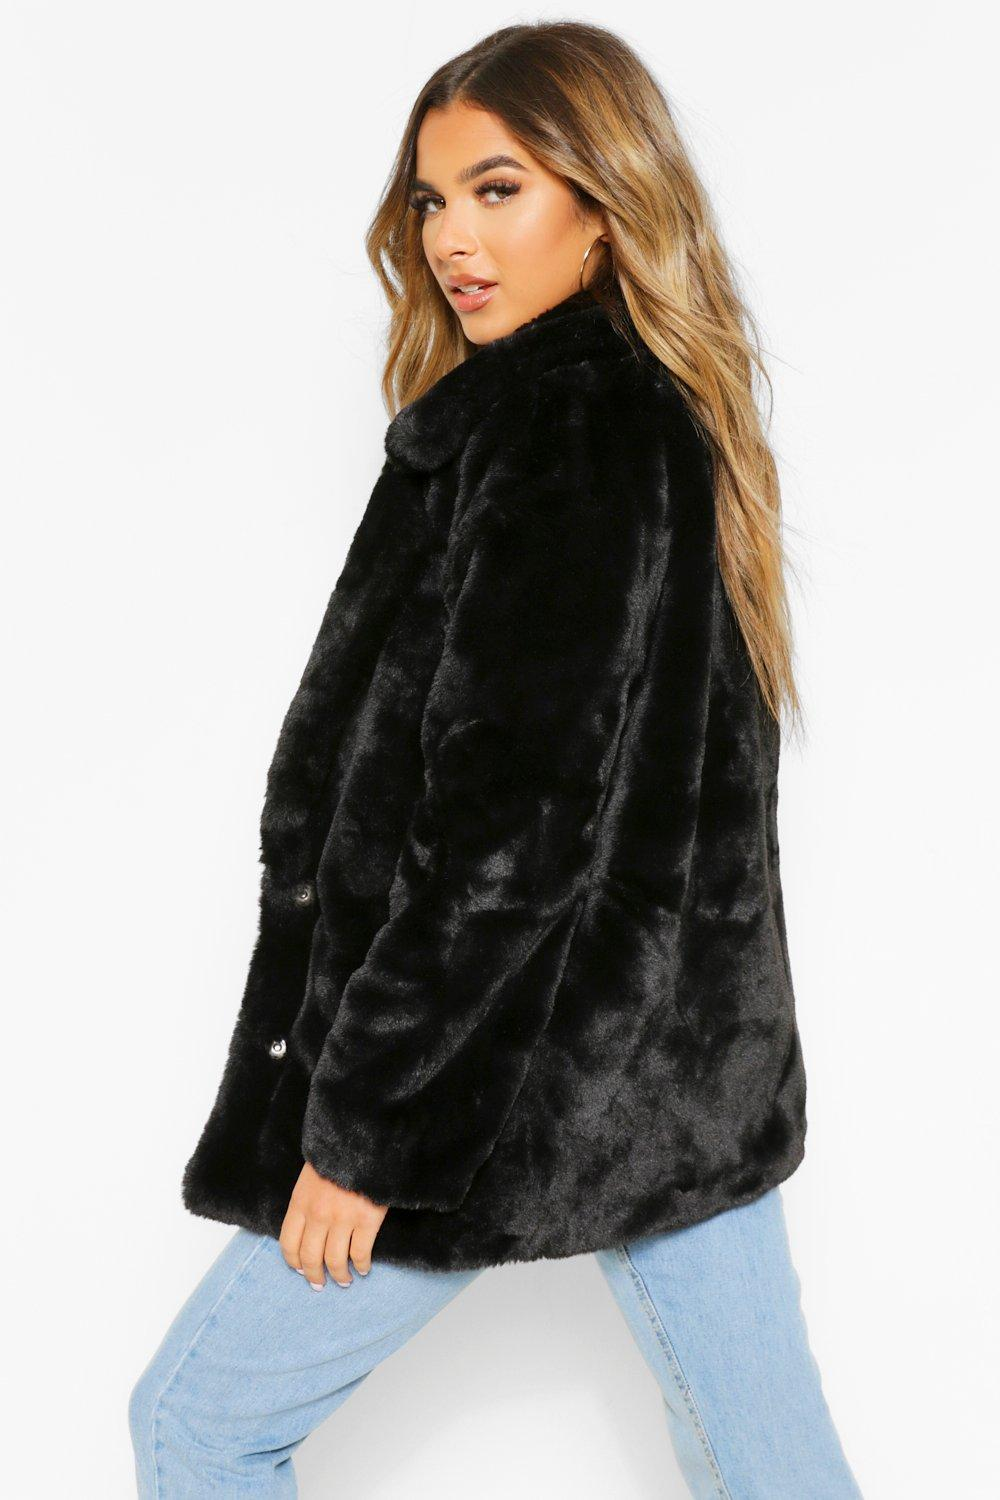 Luxe Petite Fur Coat Oversized Collar black Faux qEwxrUEvS